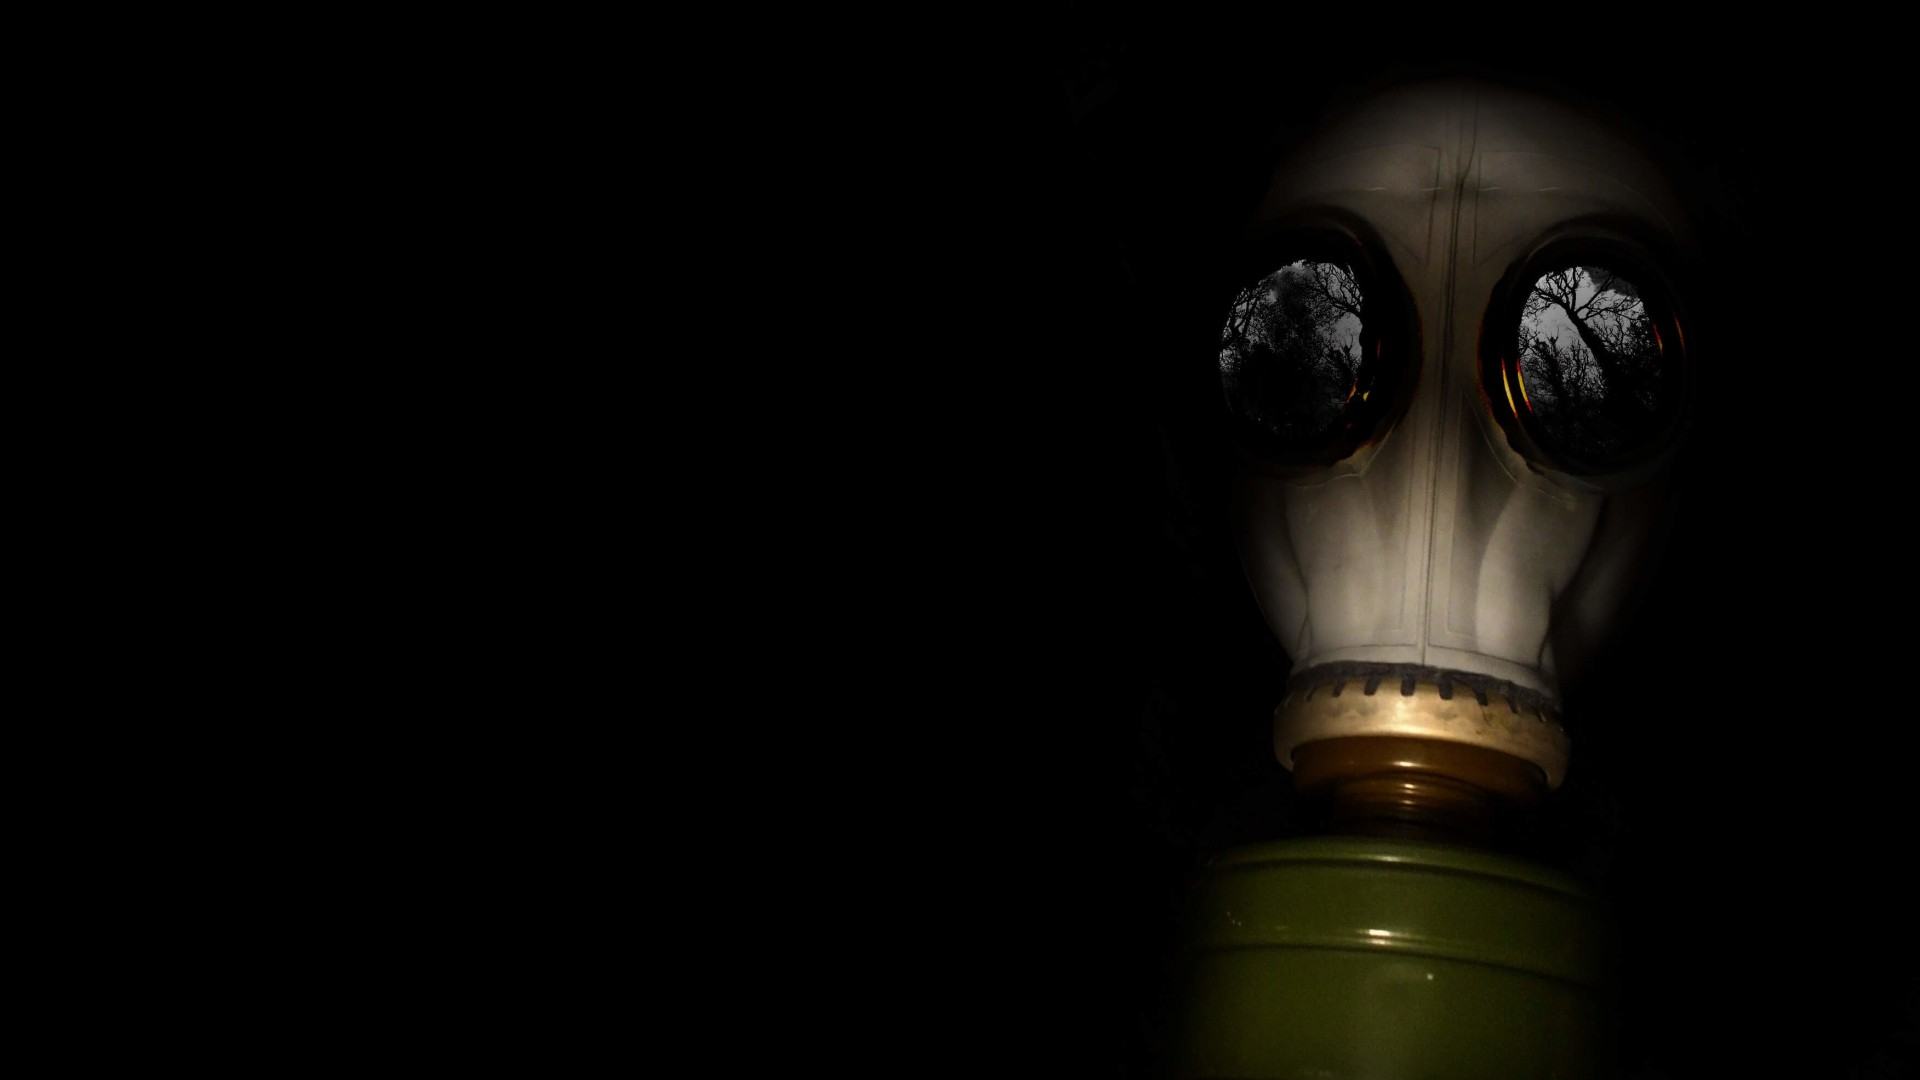 WWII Gas Mask Wallpaper for Desktop 1920x1080